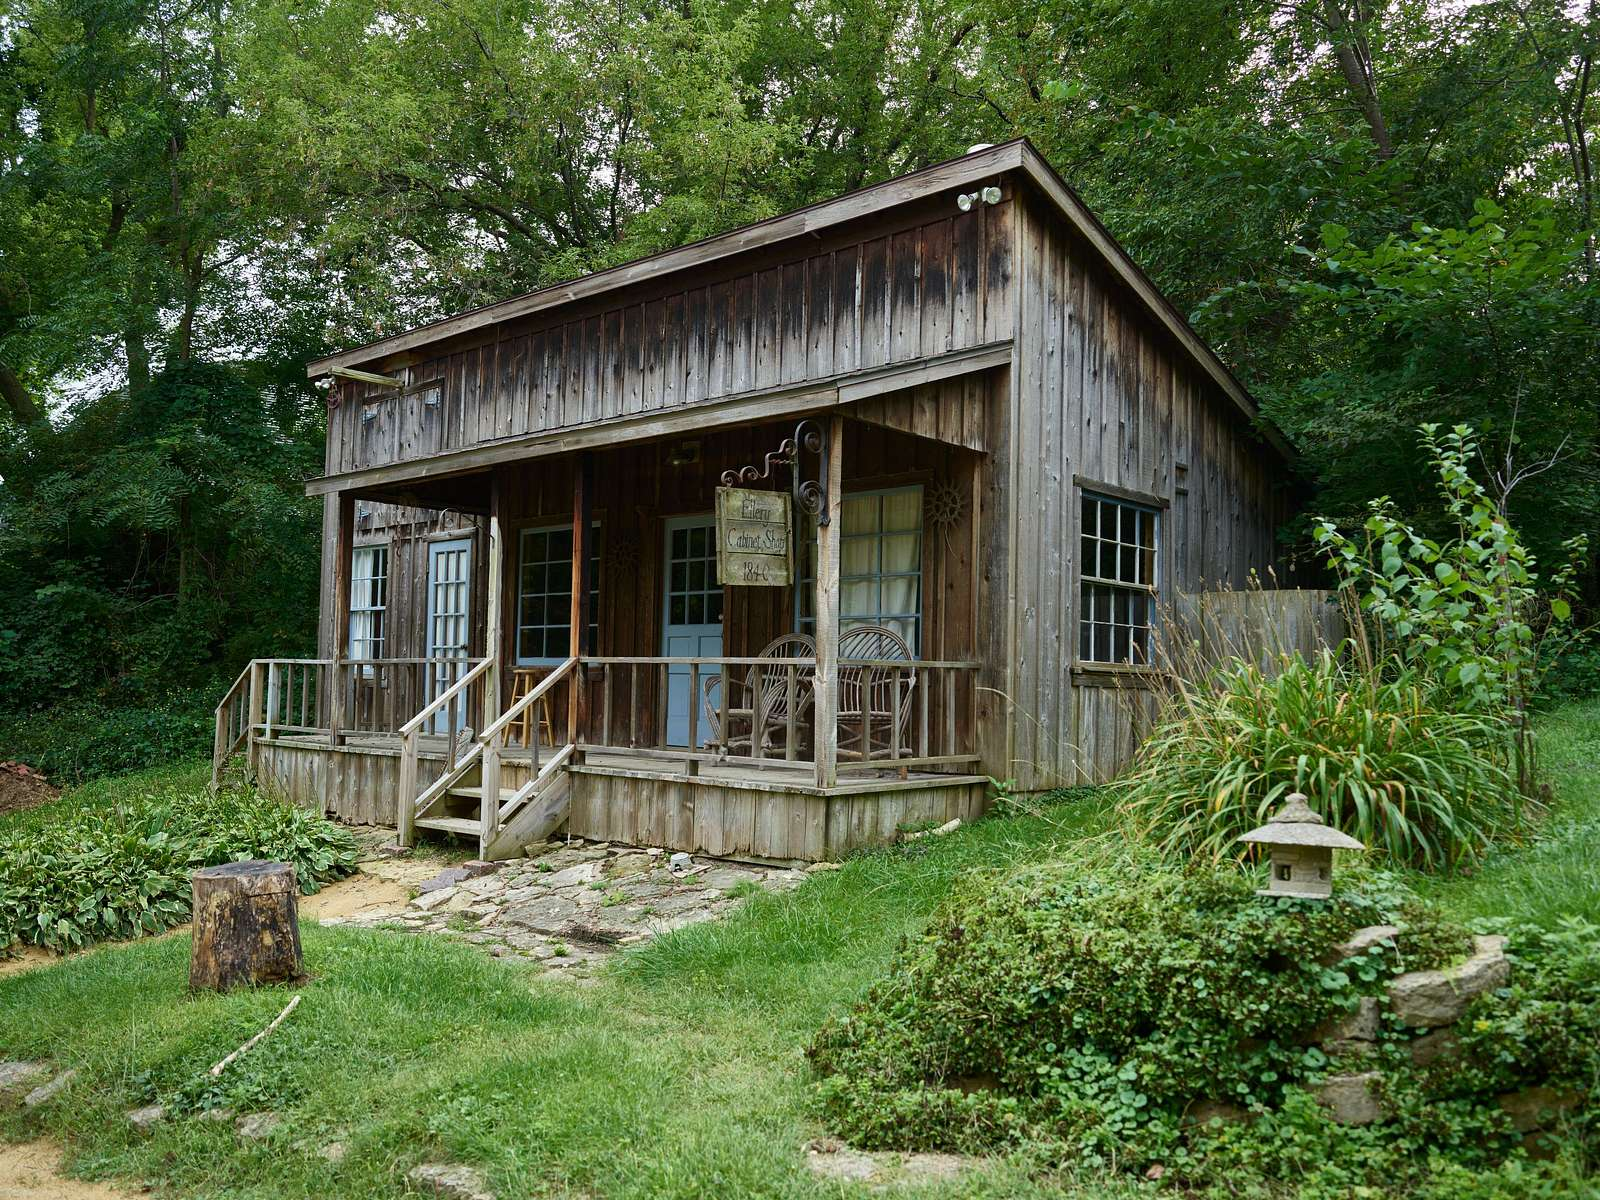 The 1840-vintage Ellery Cabinet Shop in the Shake Rag Alley artists' compound in Mineral Point, Wisconsin